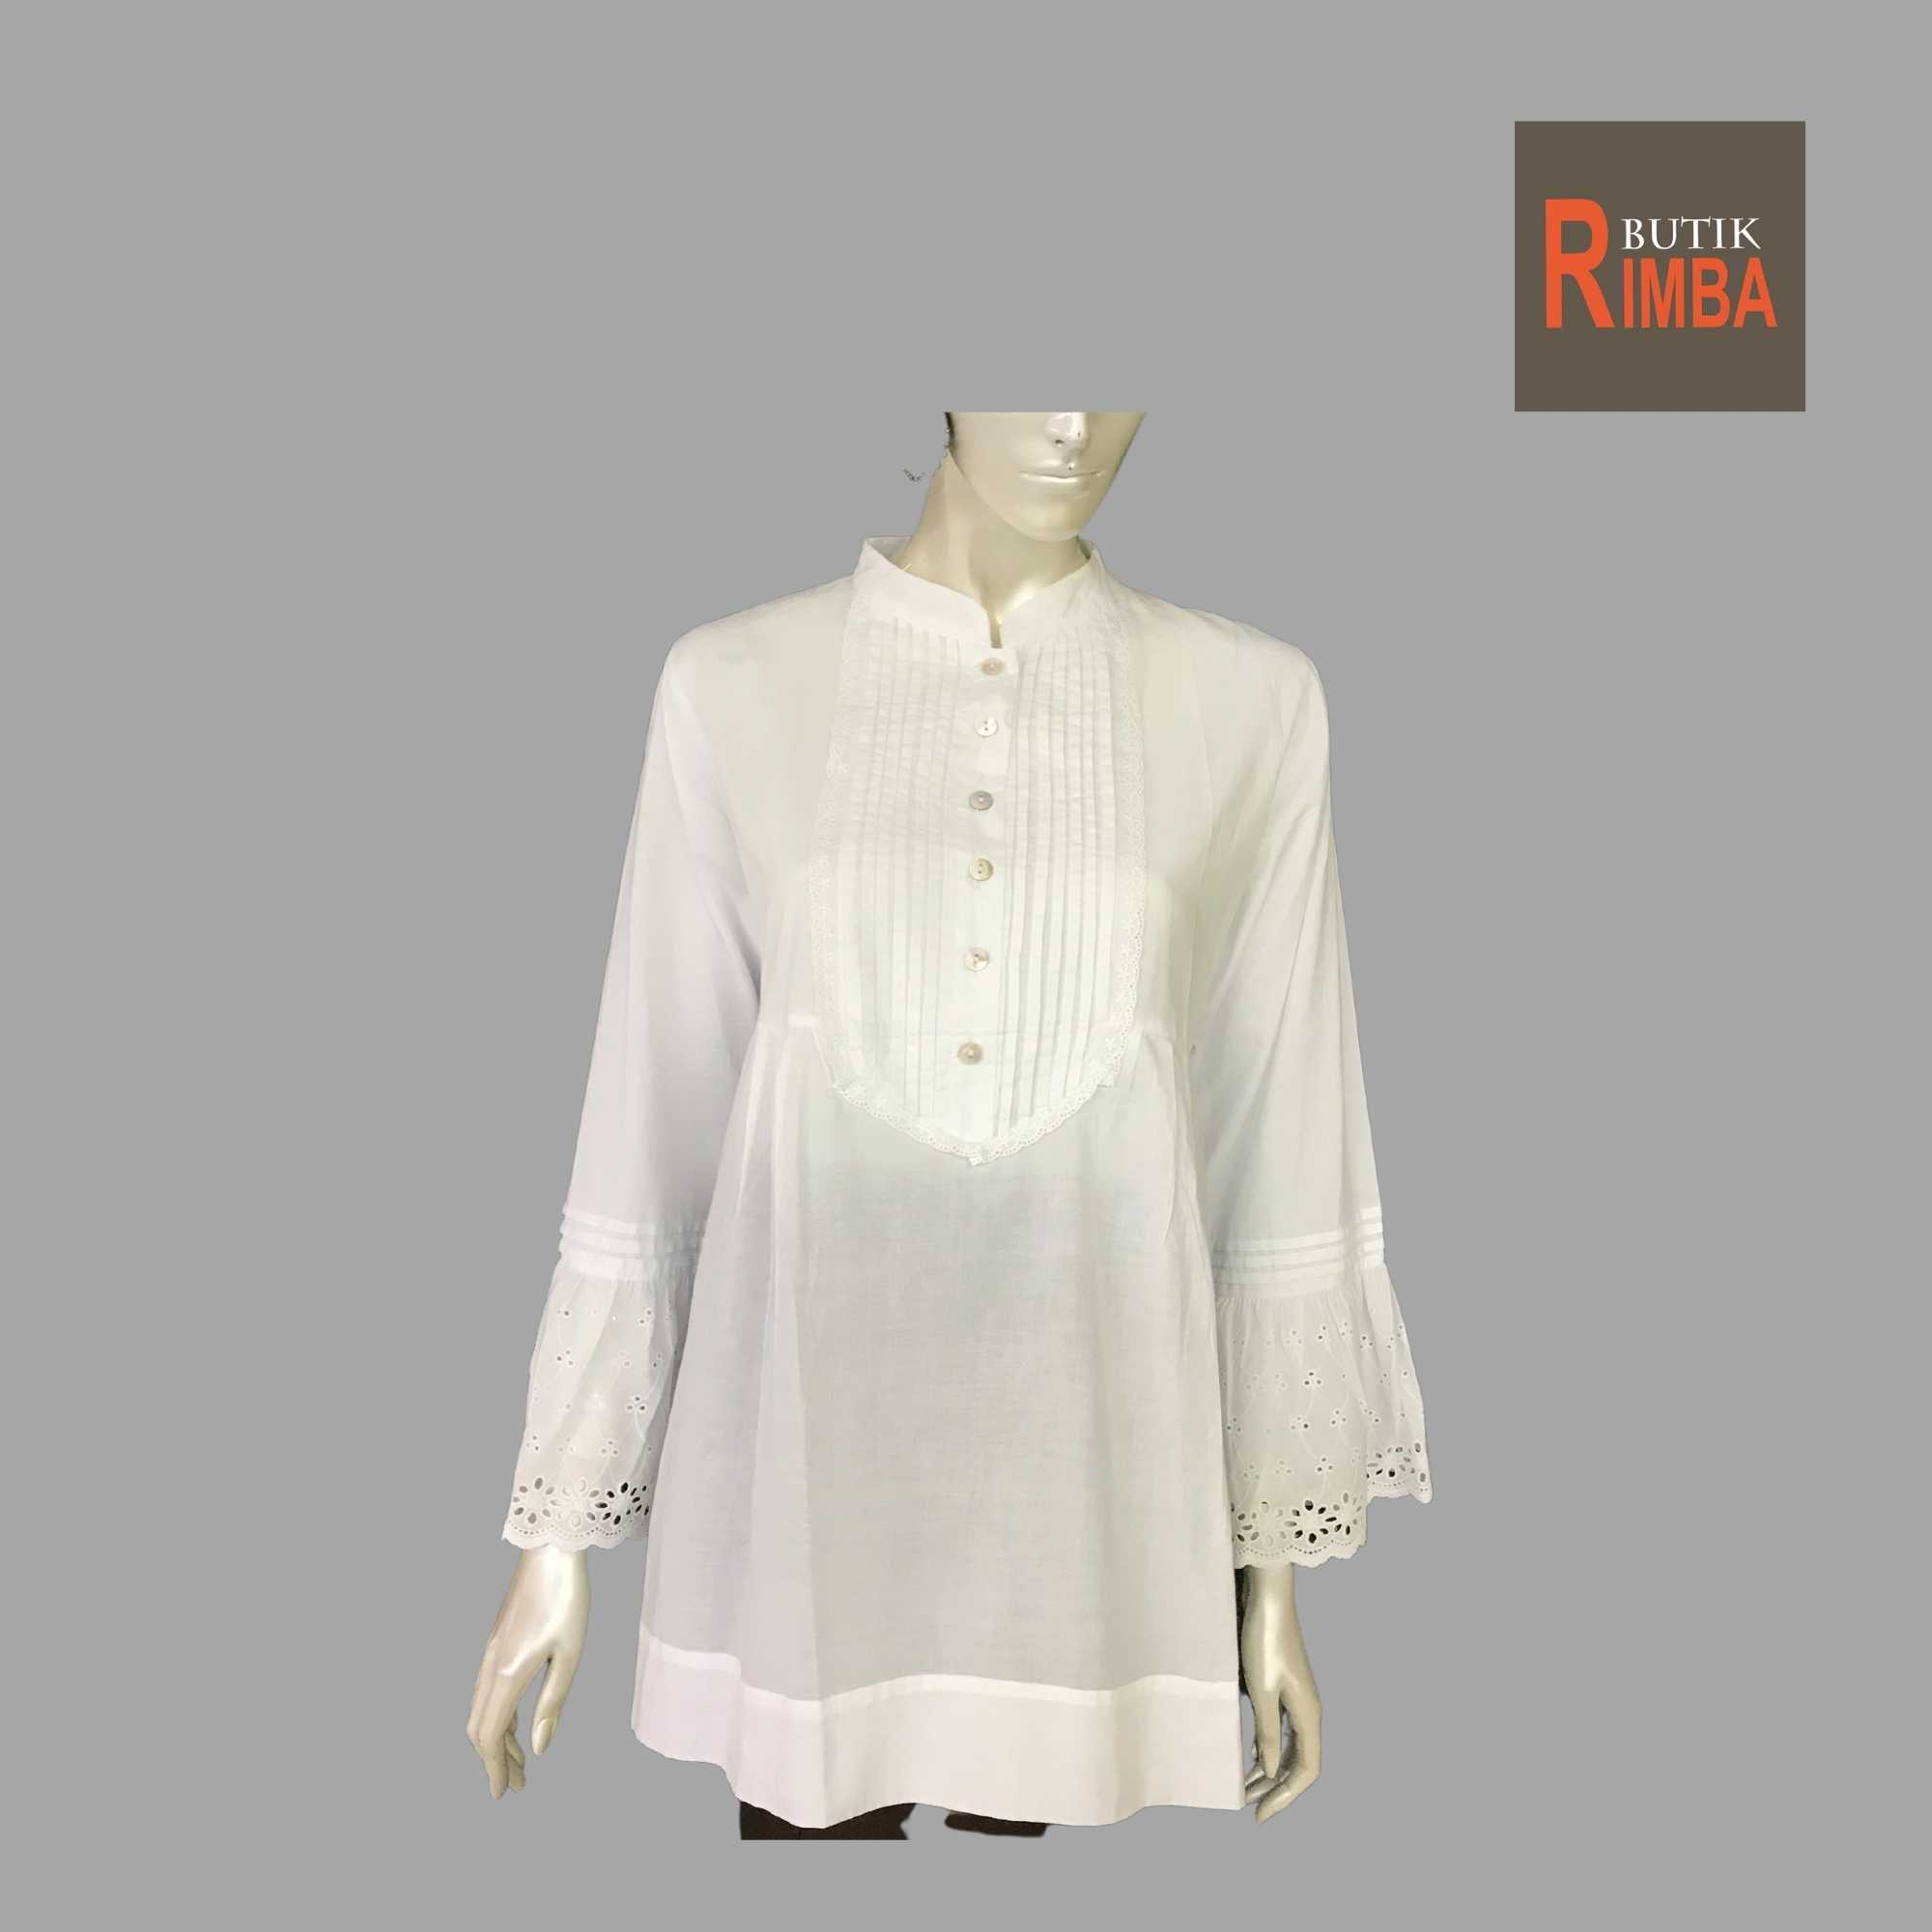 WOMEN CASUAL AND COMFORTABLE WHITE BLOUSE COTTON FREE SIZE PATTERN 16